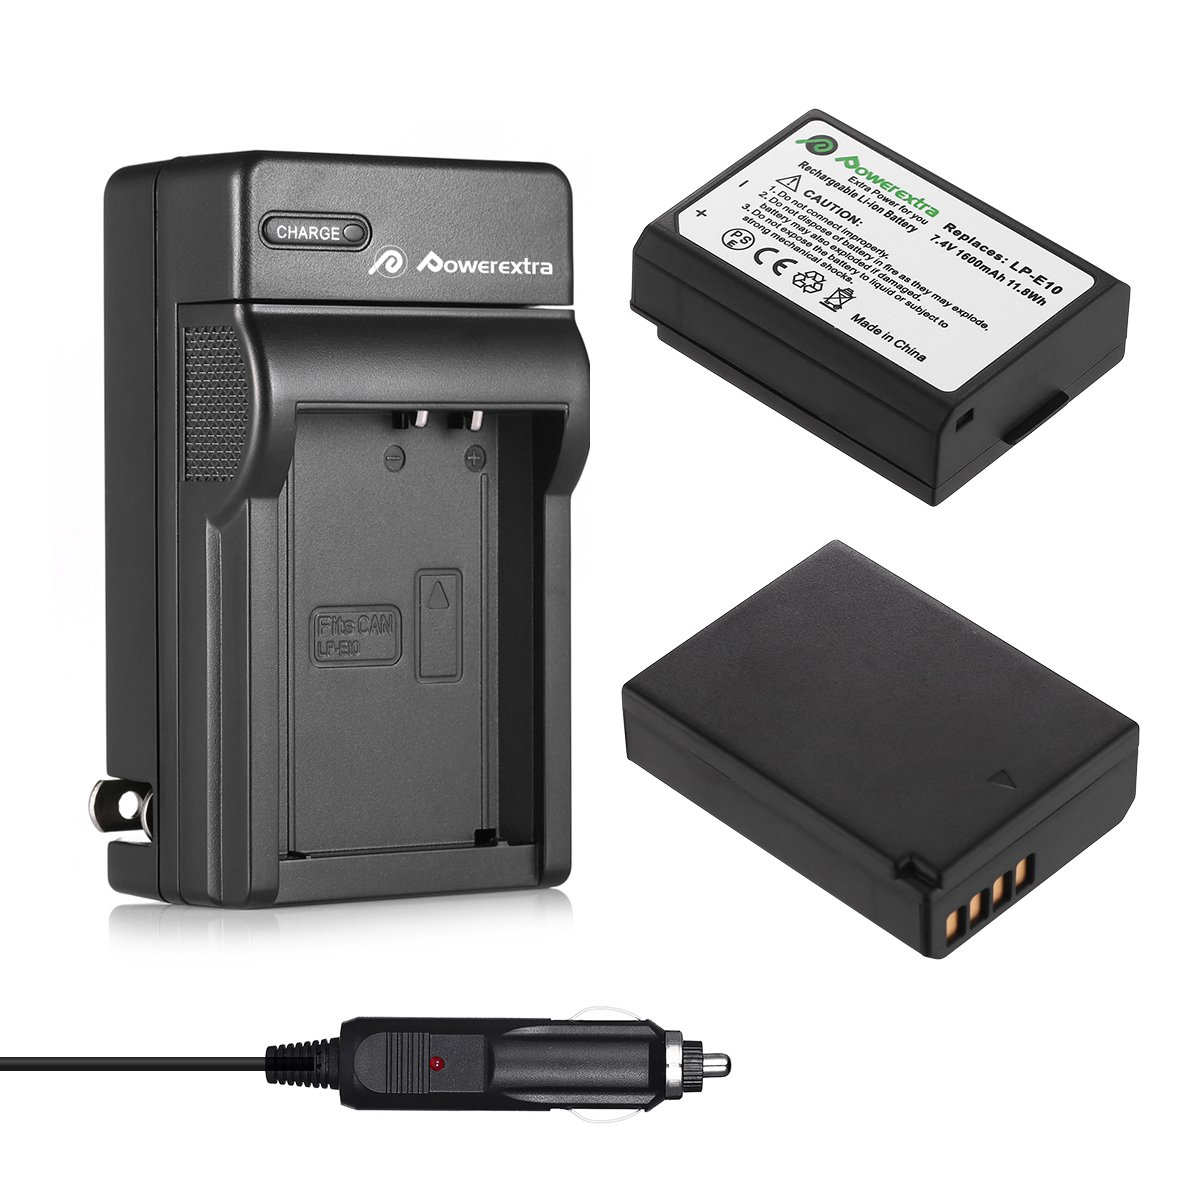 Powerextra 2 Pack Replacement Canon LP-E10 7.4V 1600mAh Li-ion Battery and Charger Compatible With Canon EOS Rebel T3, T5, T6, Kiss X50, Kiss X70, EOS 1100D, EOS 1200D, EOS 1300D Digital SLR Camera